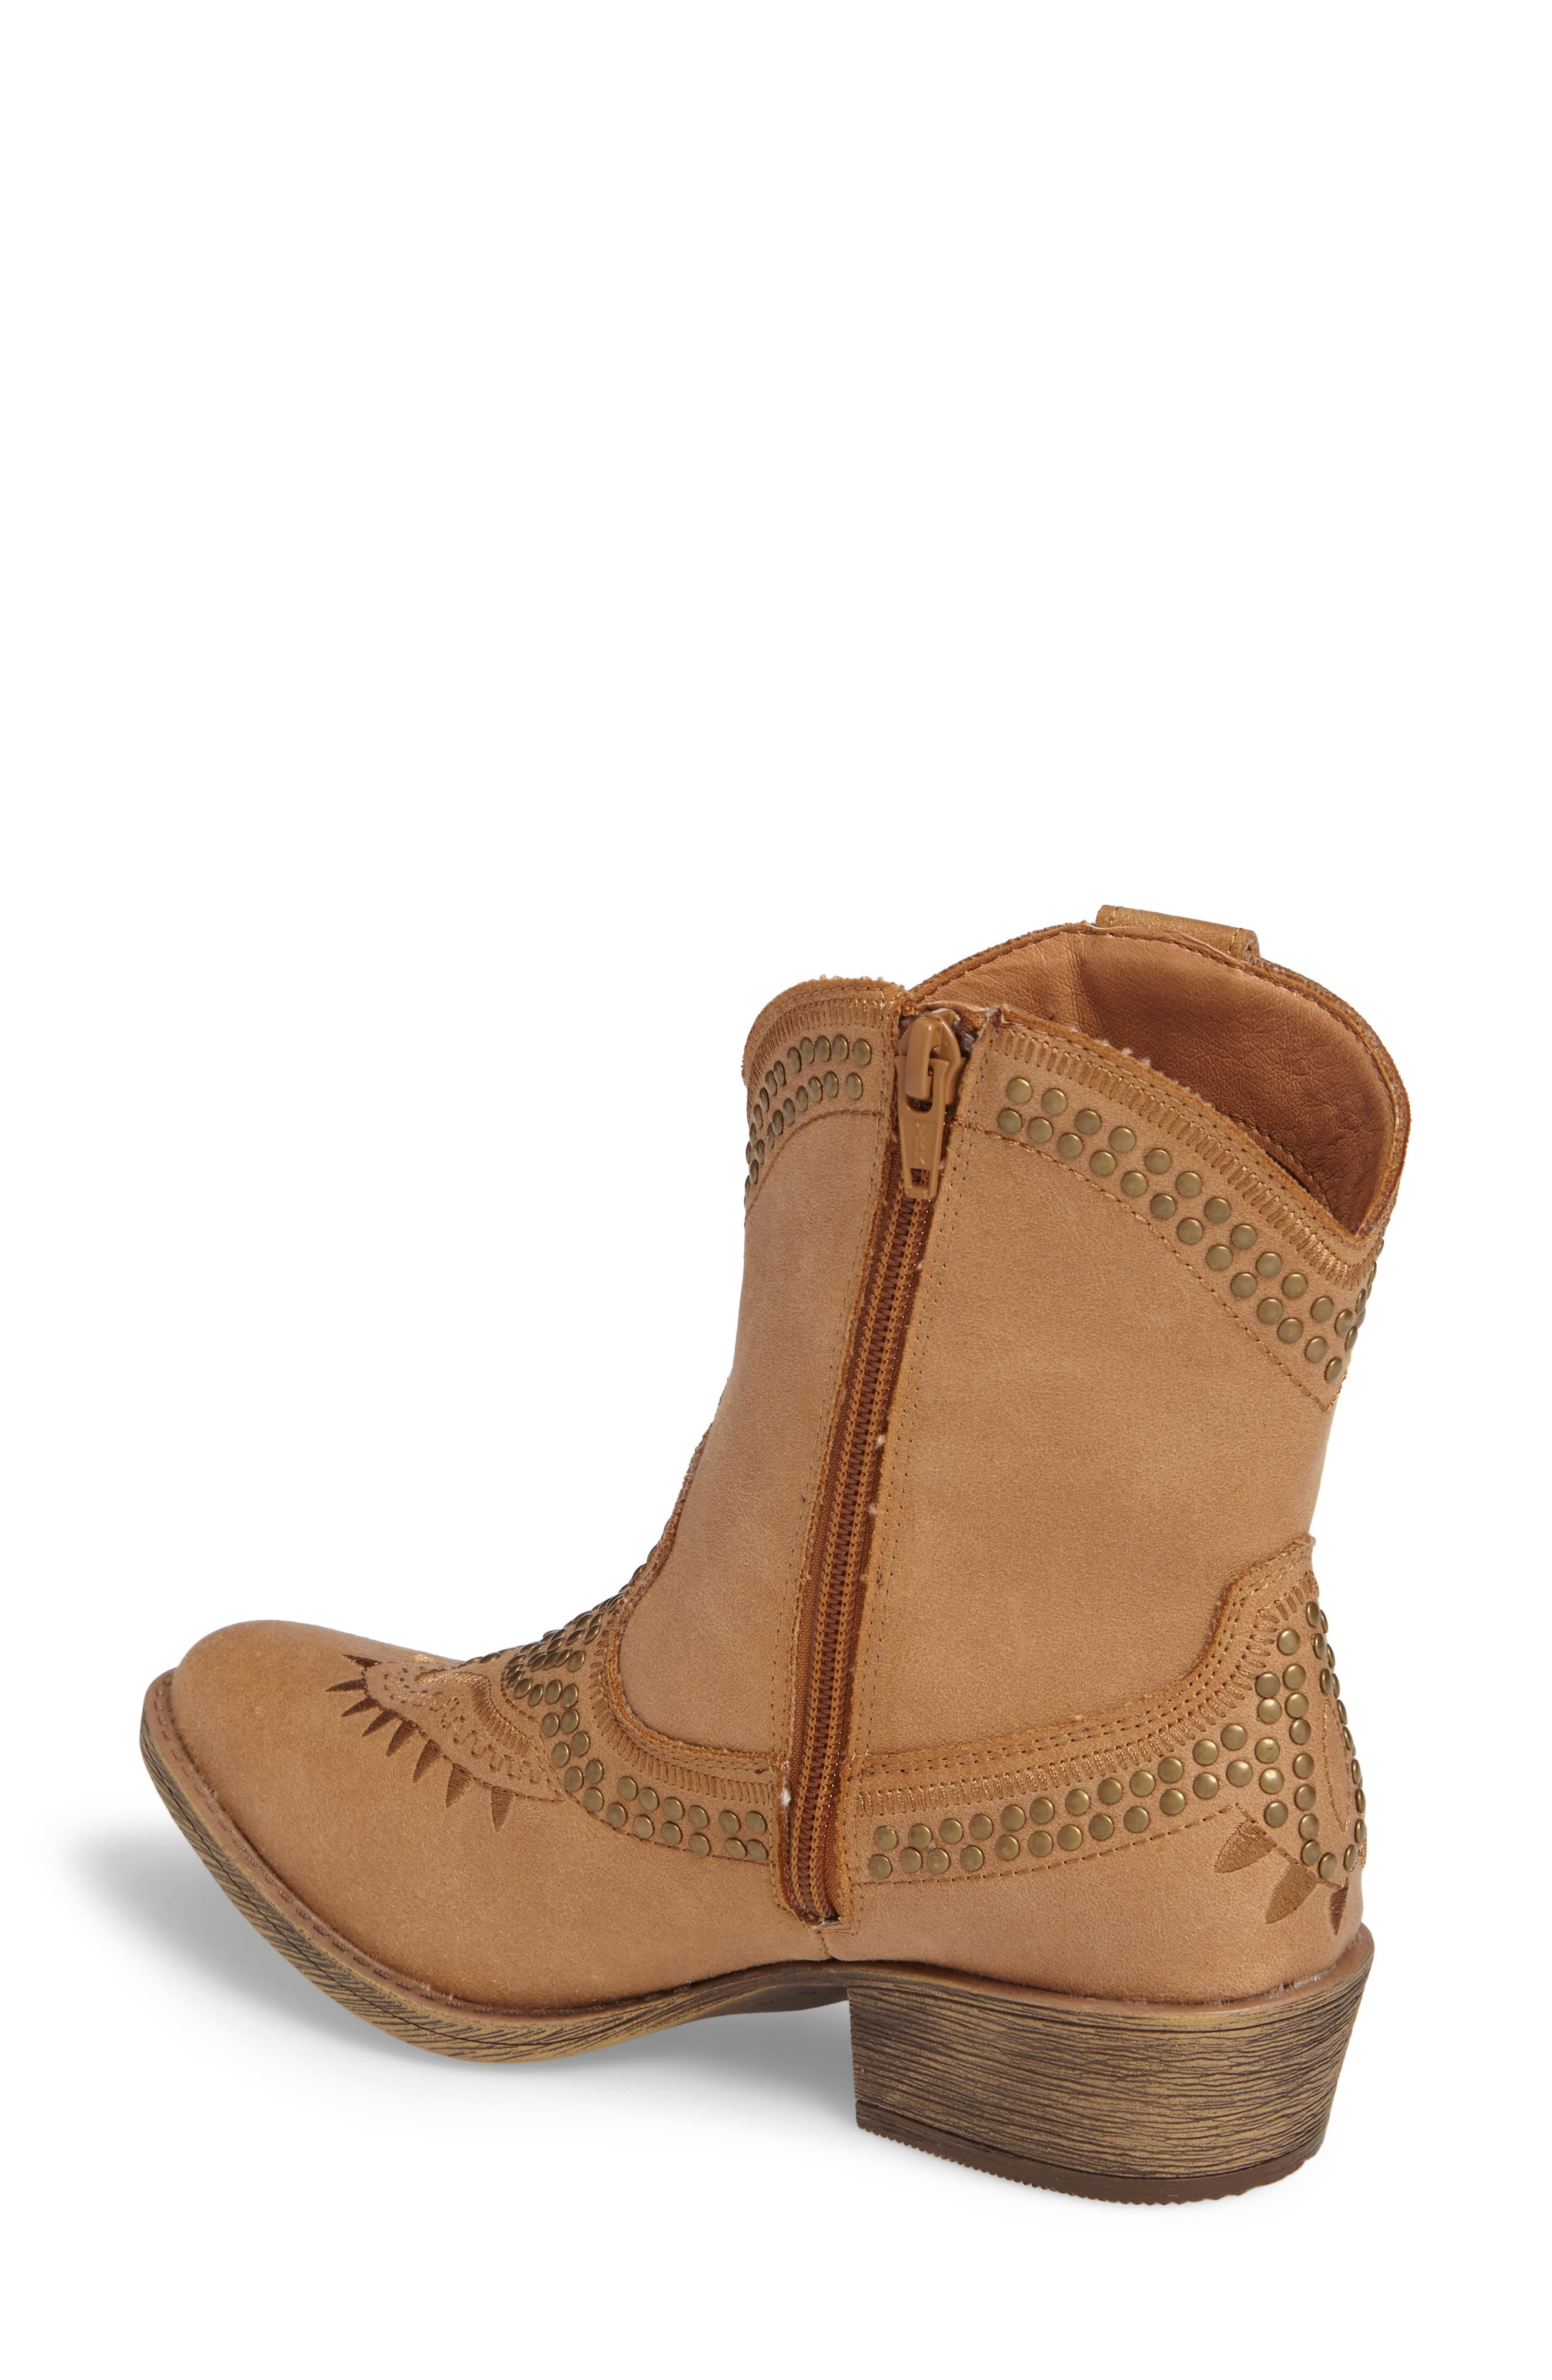 Amour Embellished Western Bootie,                             Alternate thumbnail 2, color,                             Natural